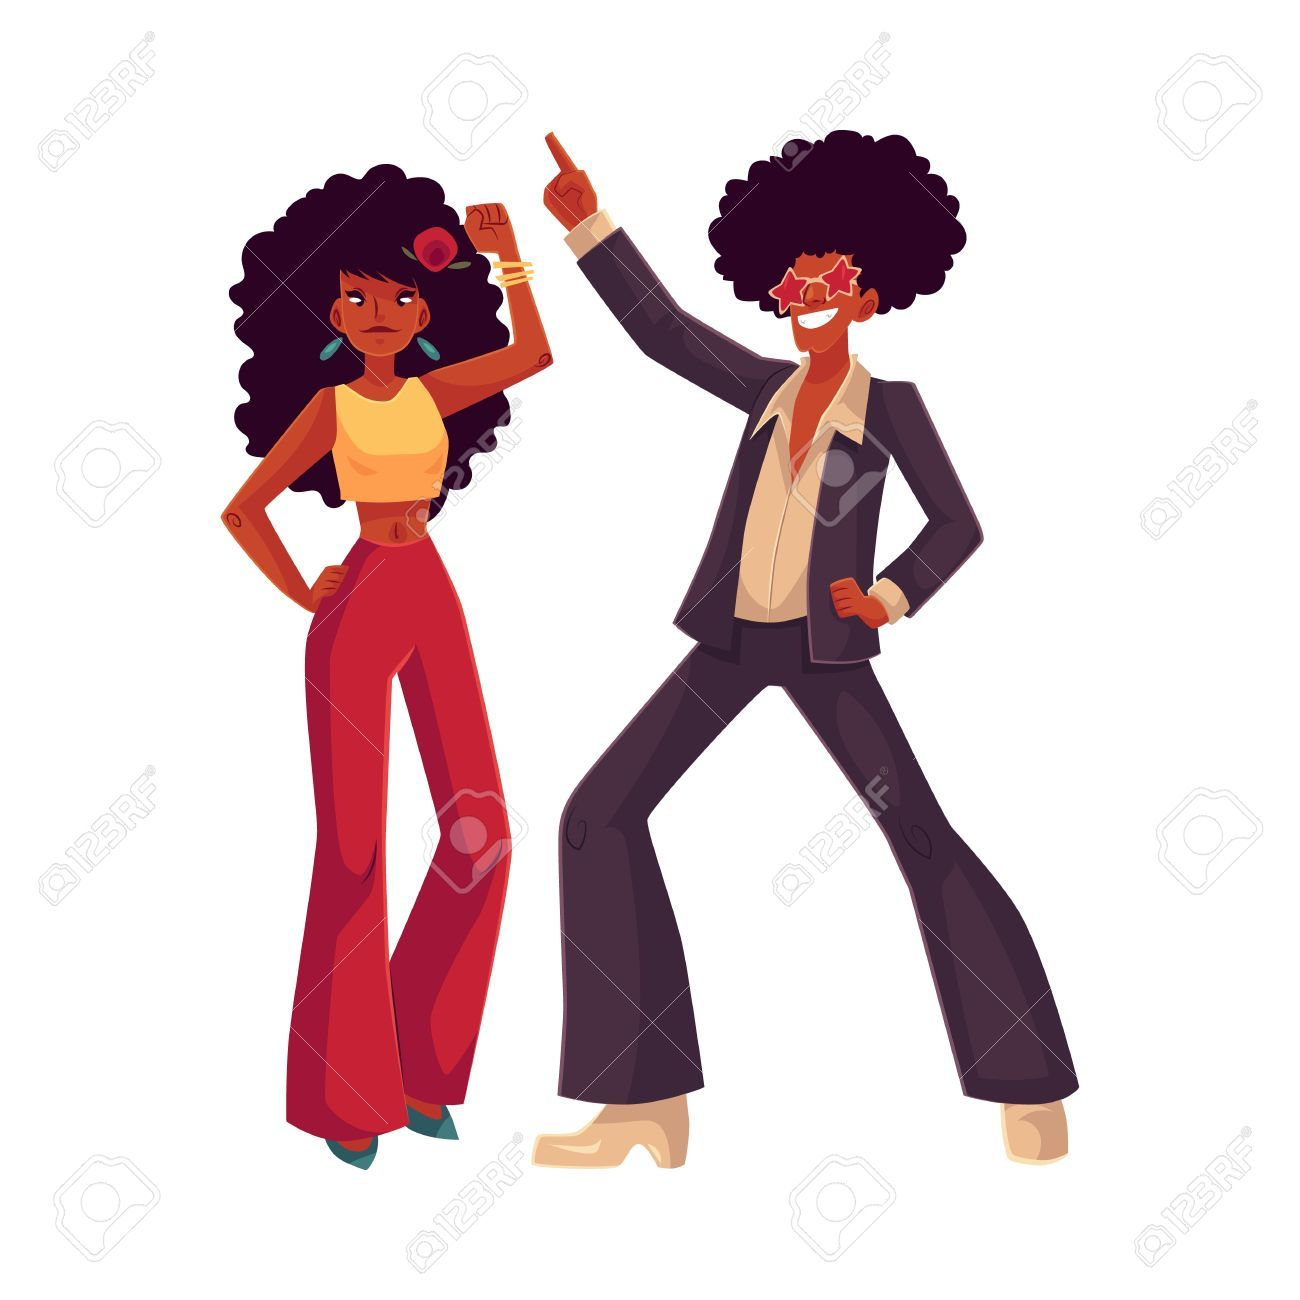 1970 s clipart image library library Image result for 70s african american clipart | misc | Cartoon ... image library library